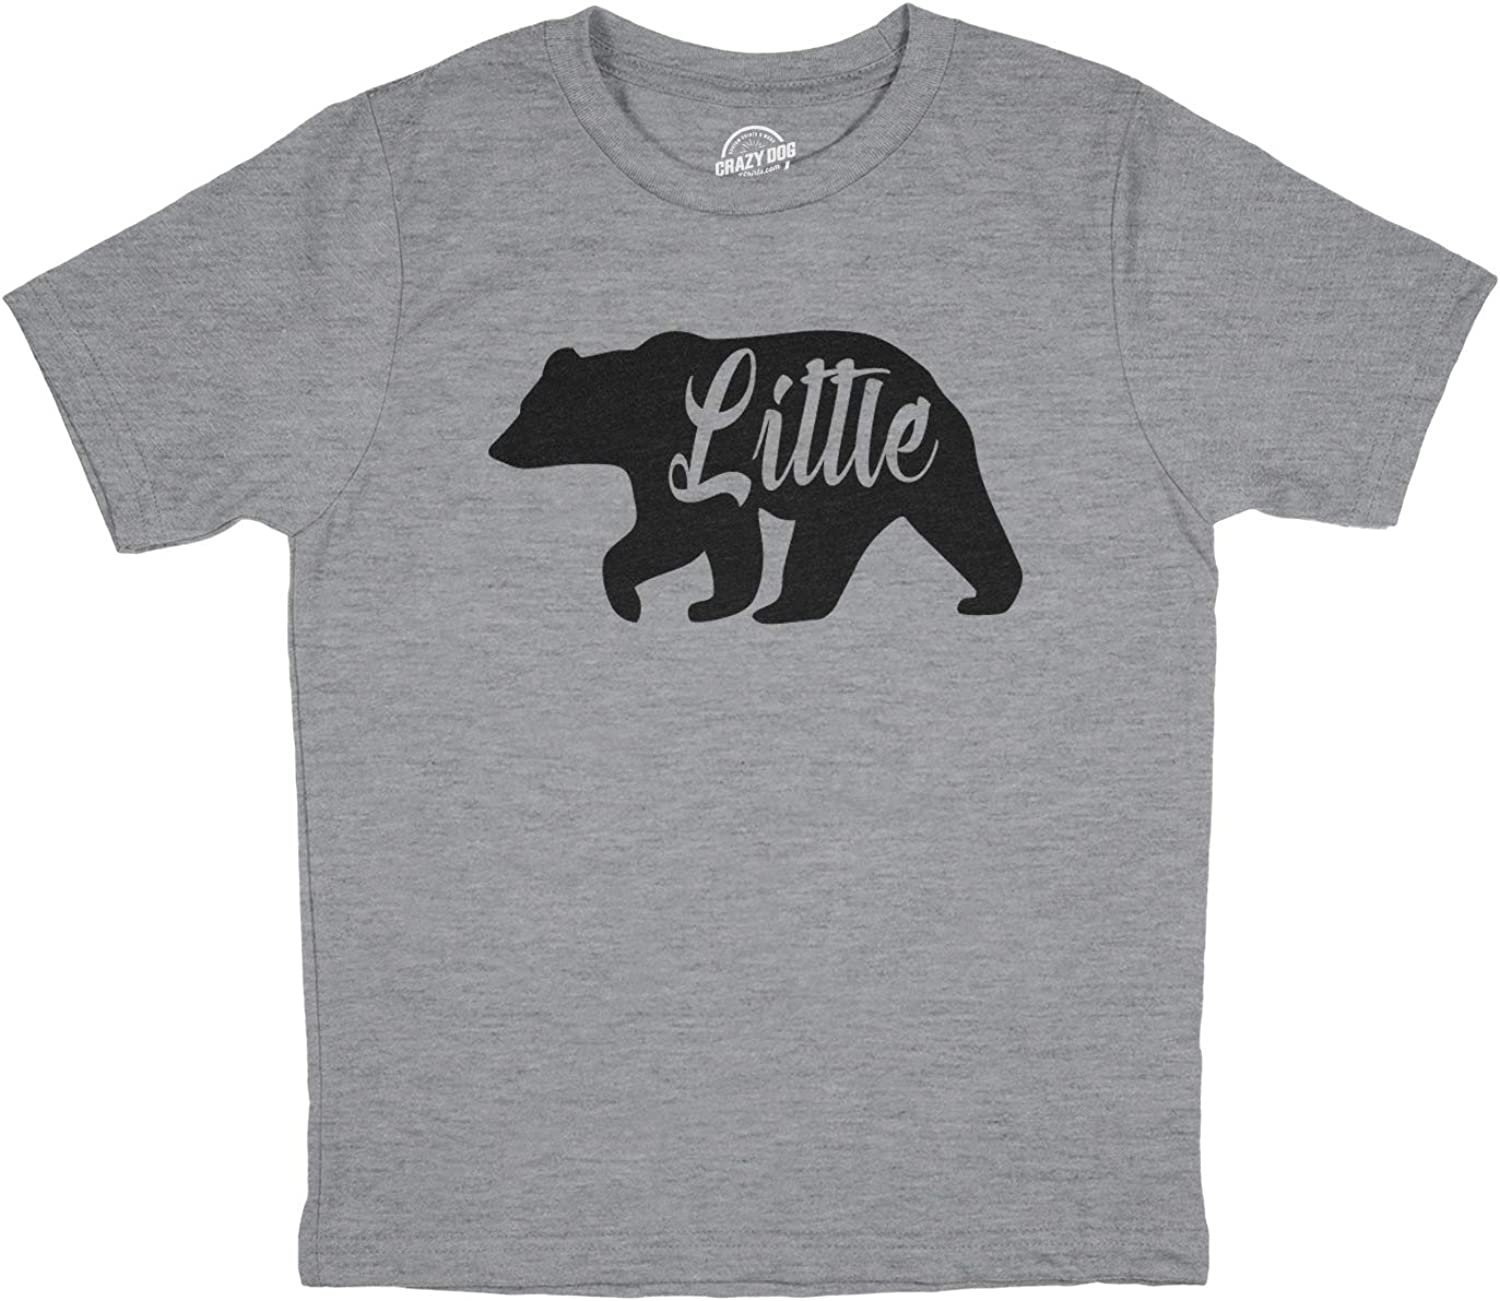 Toddler Little Bear for Max 52% OFF Children Limited time free shipping Graphic Family Novelty T Funny